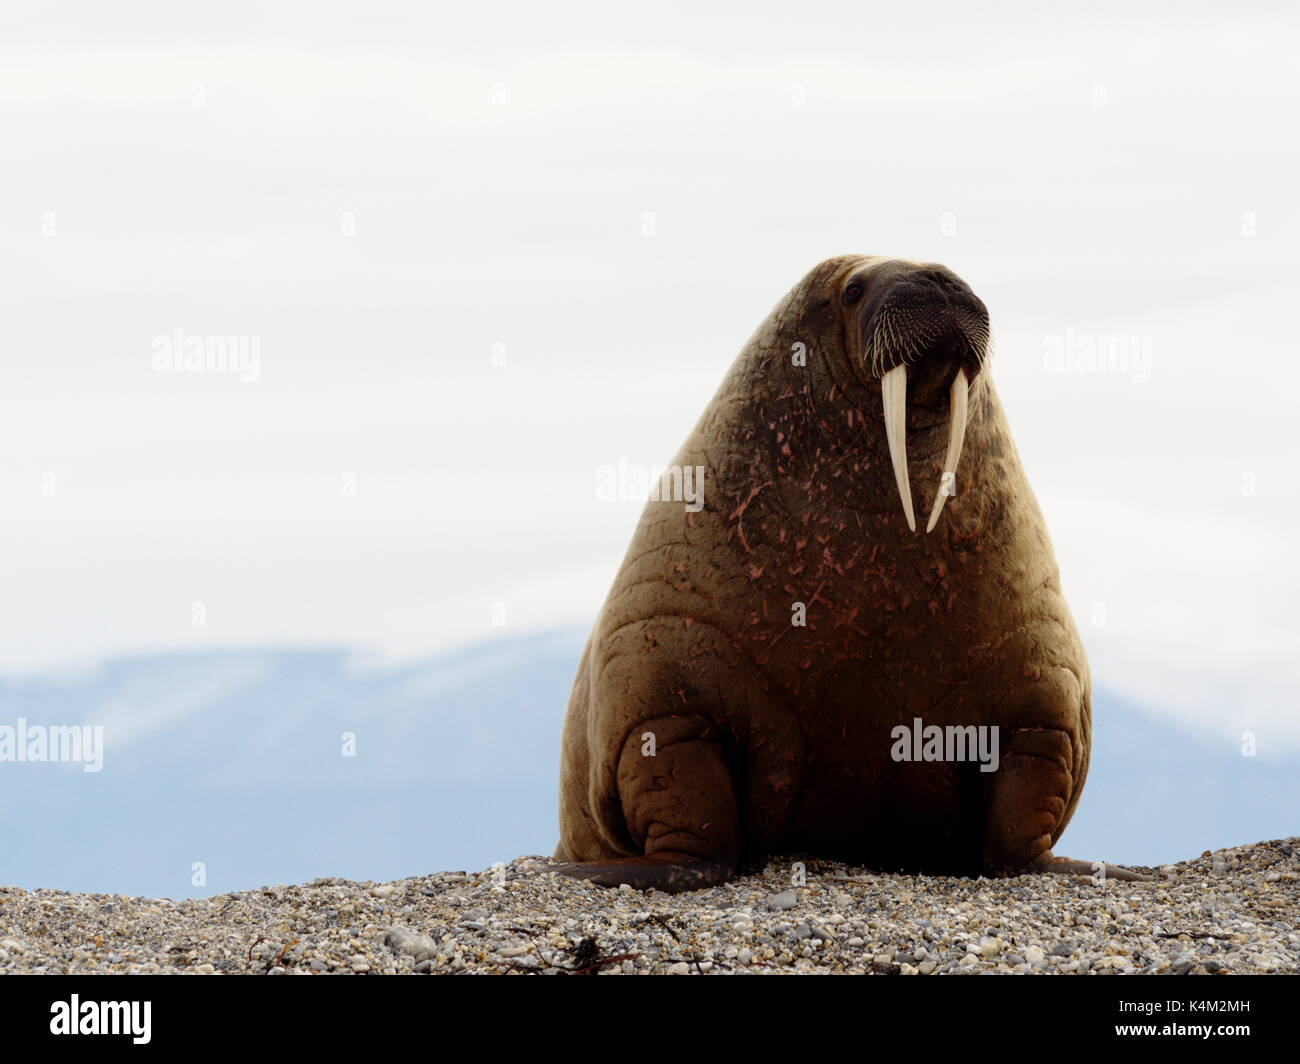 Majestic adult walrus on a beach in Svalbard, Norway - Stock Image